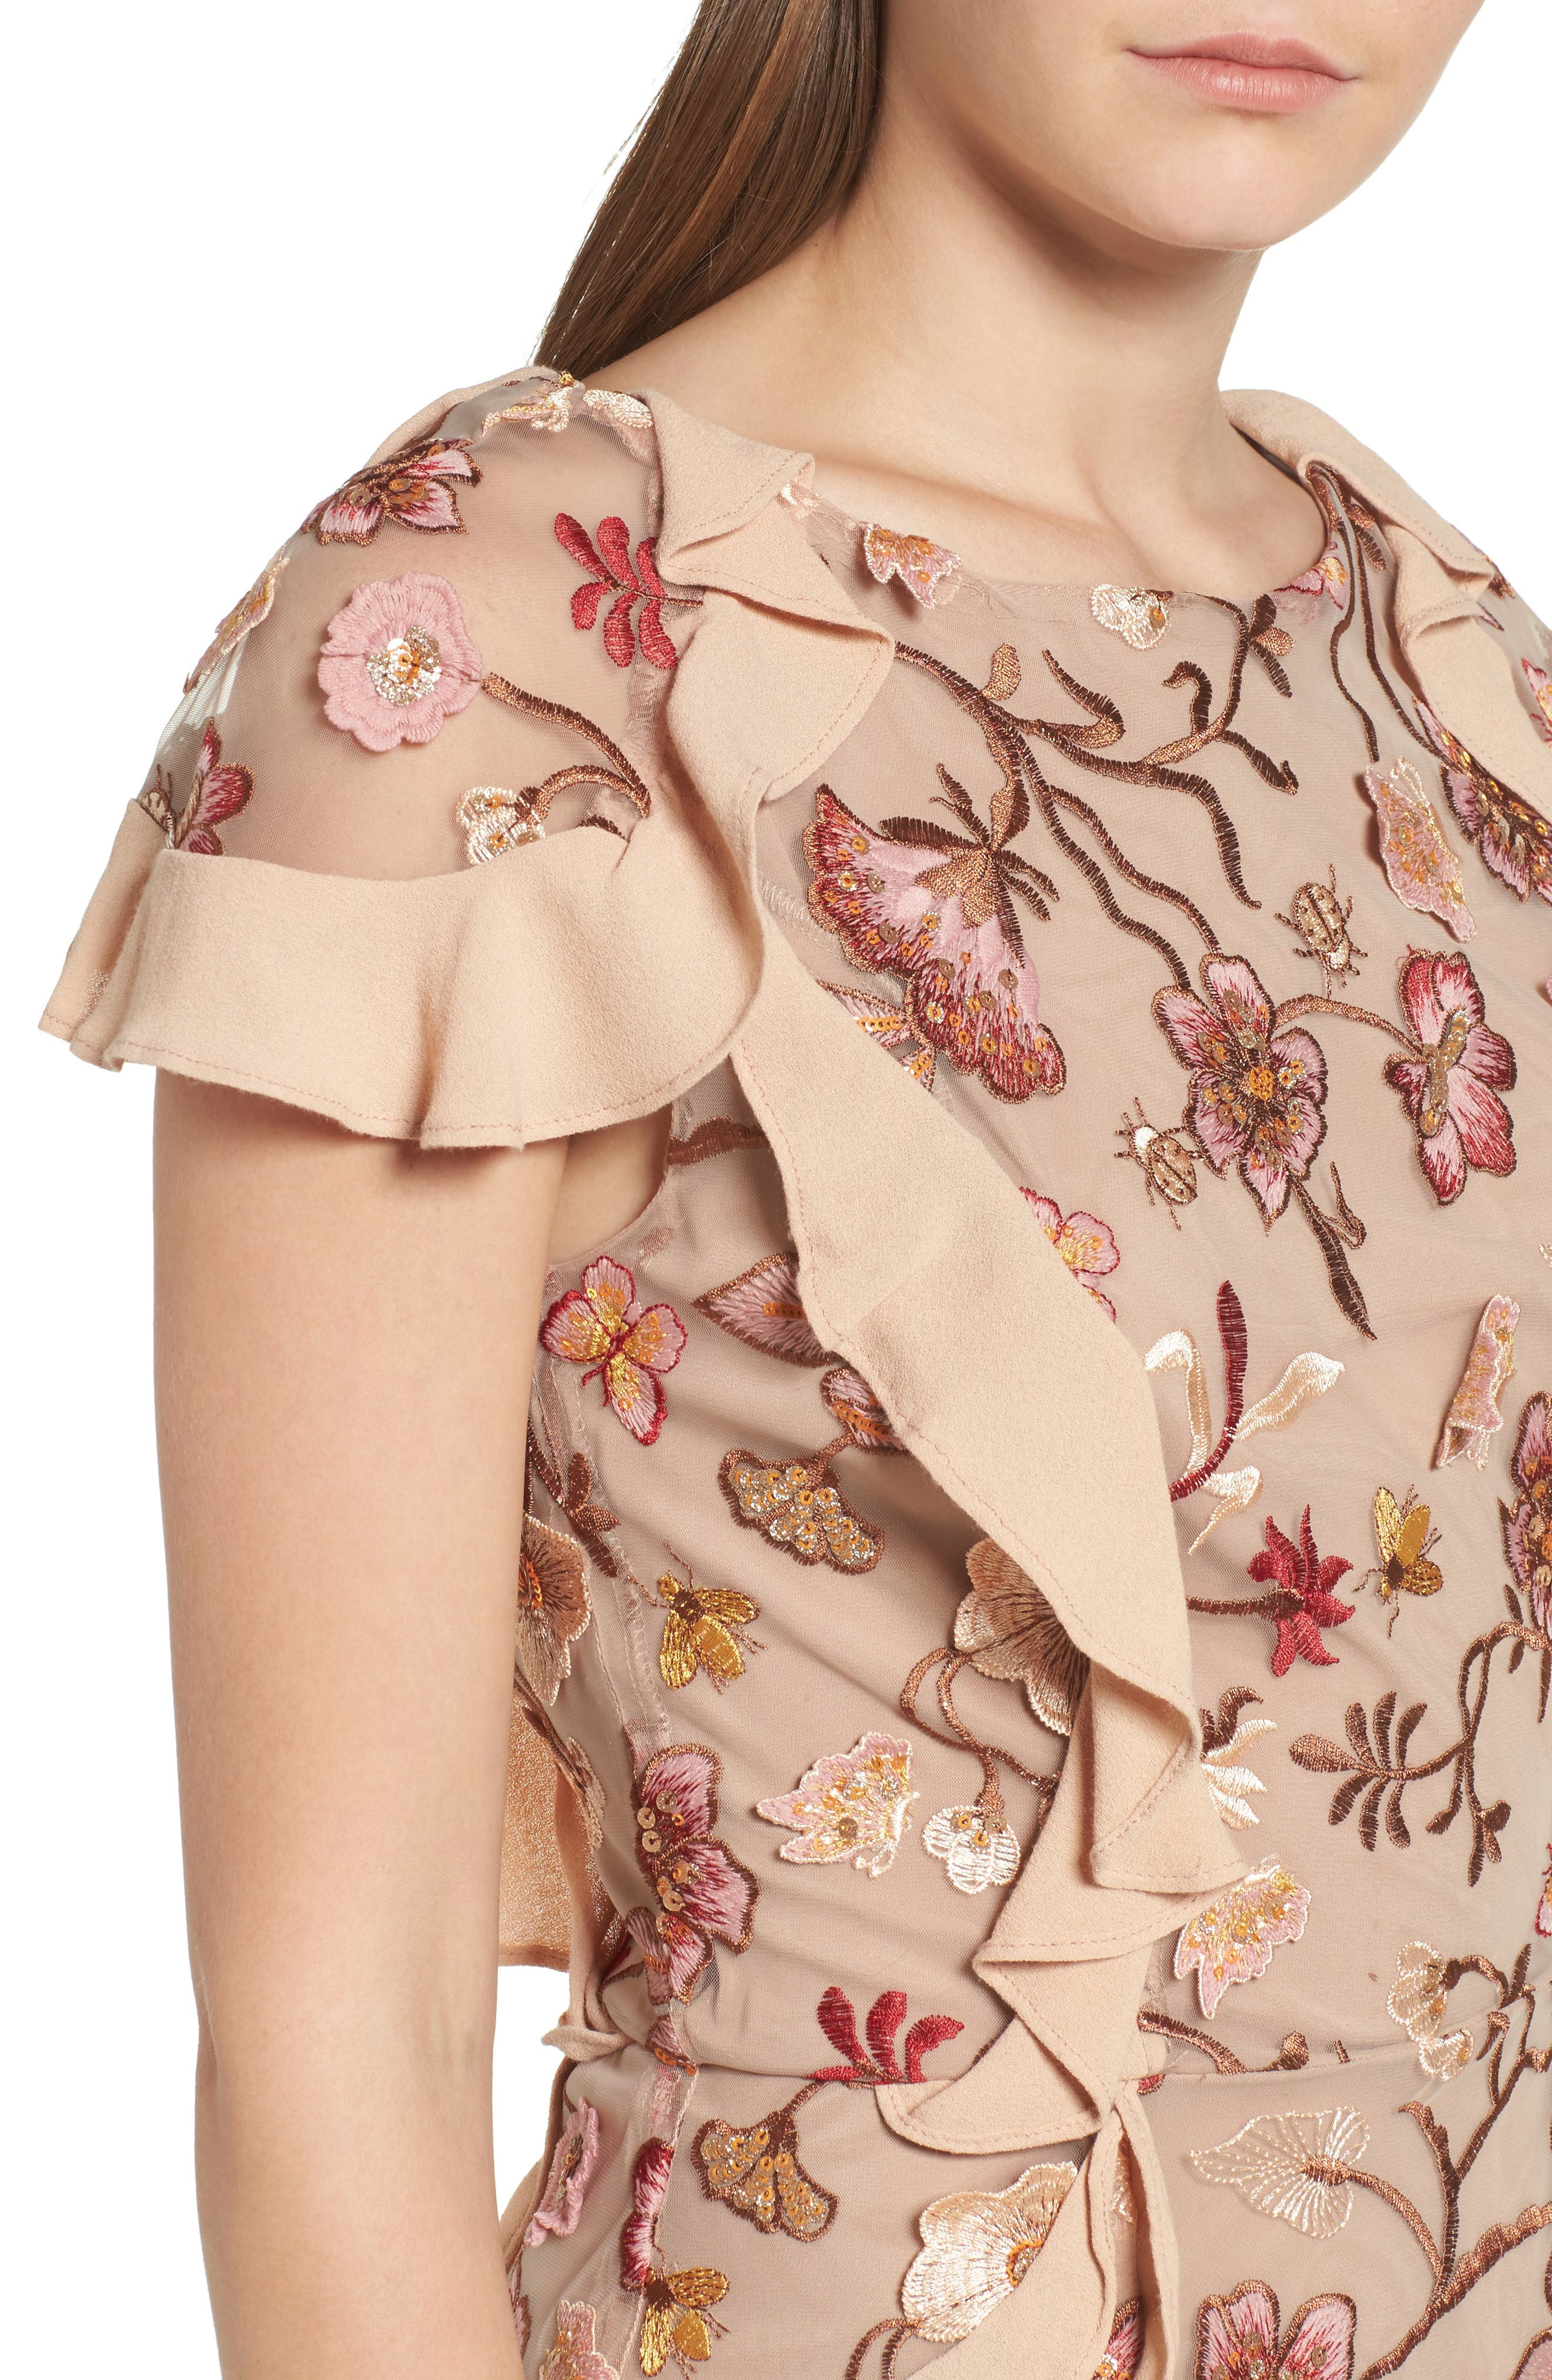 Botanical Embroidered Ruffle Minidress,                             Alternate thumbnail 4, color,                             Nude Floral